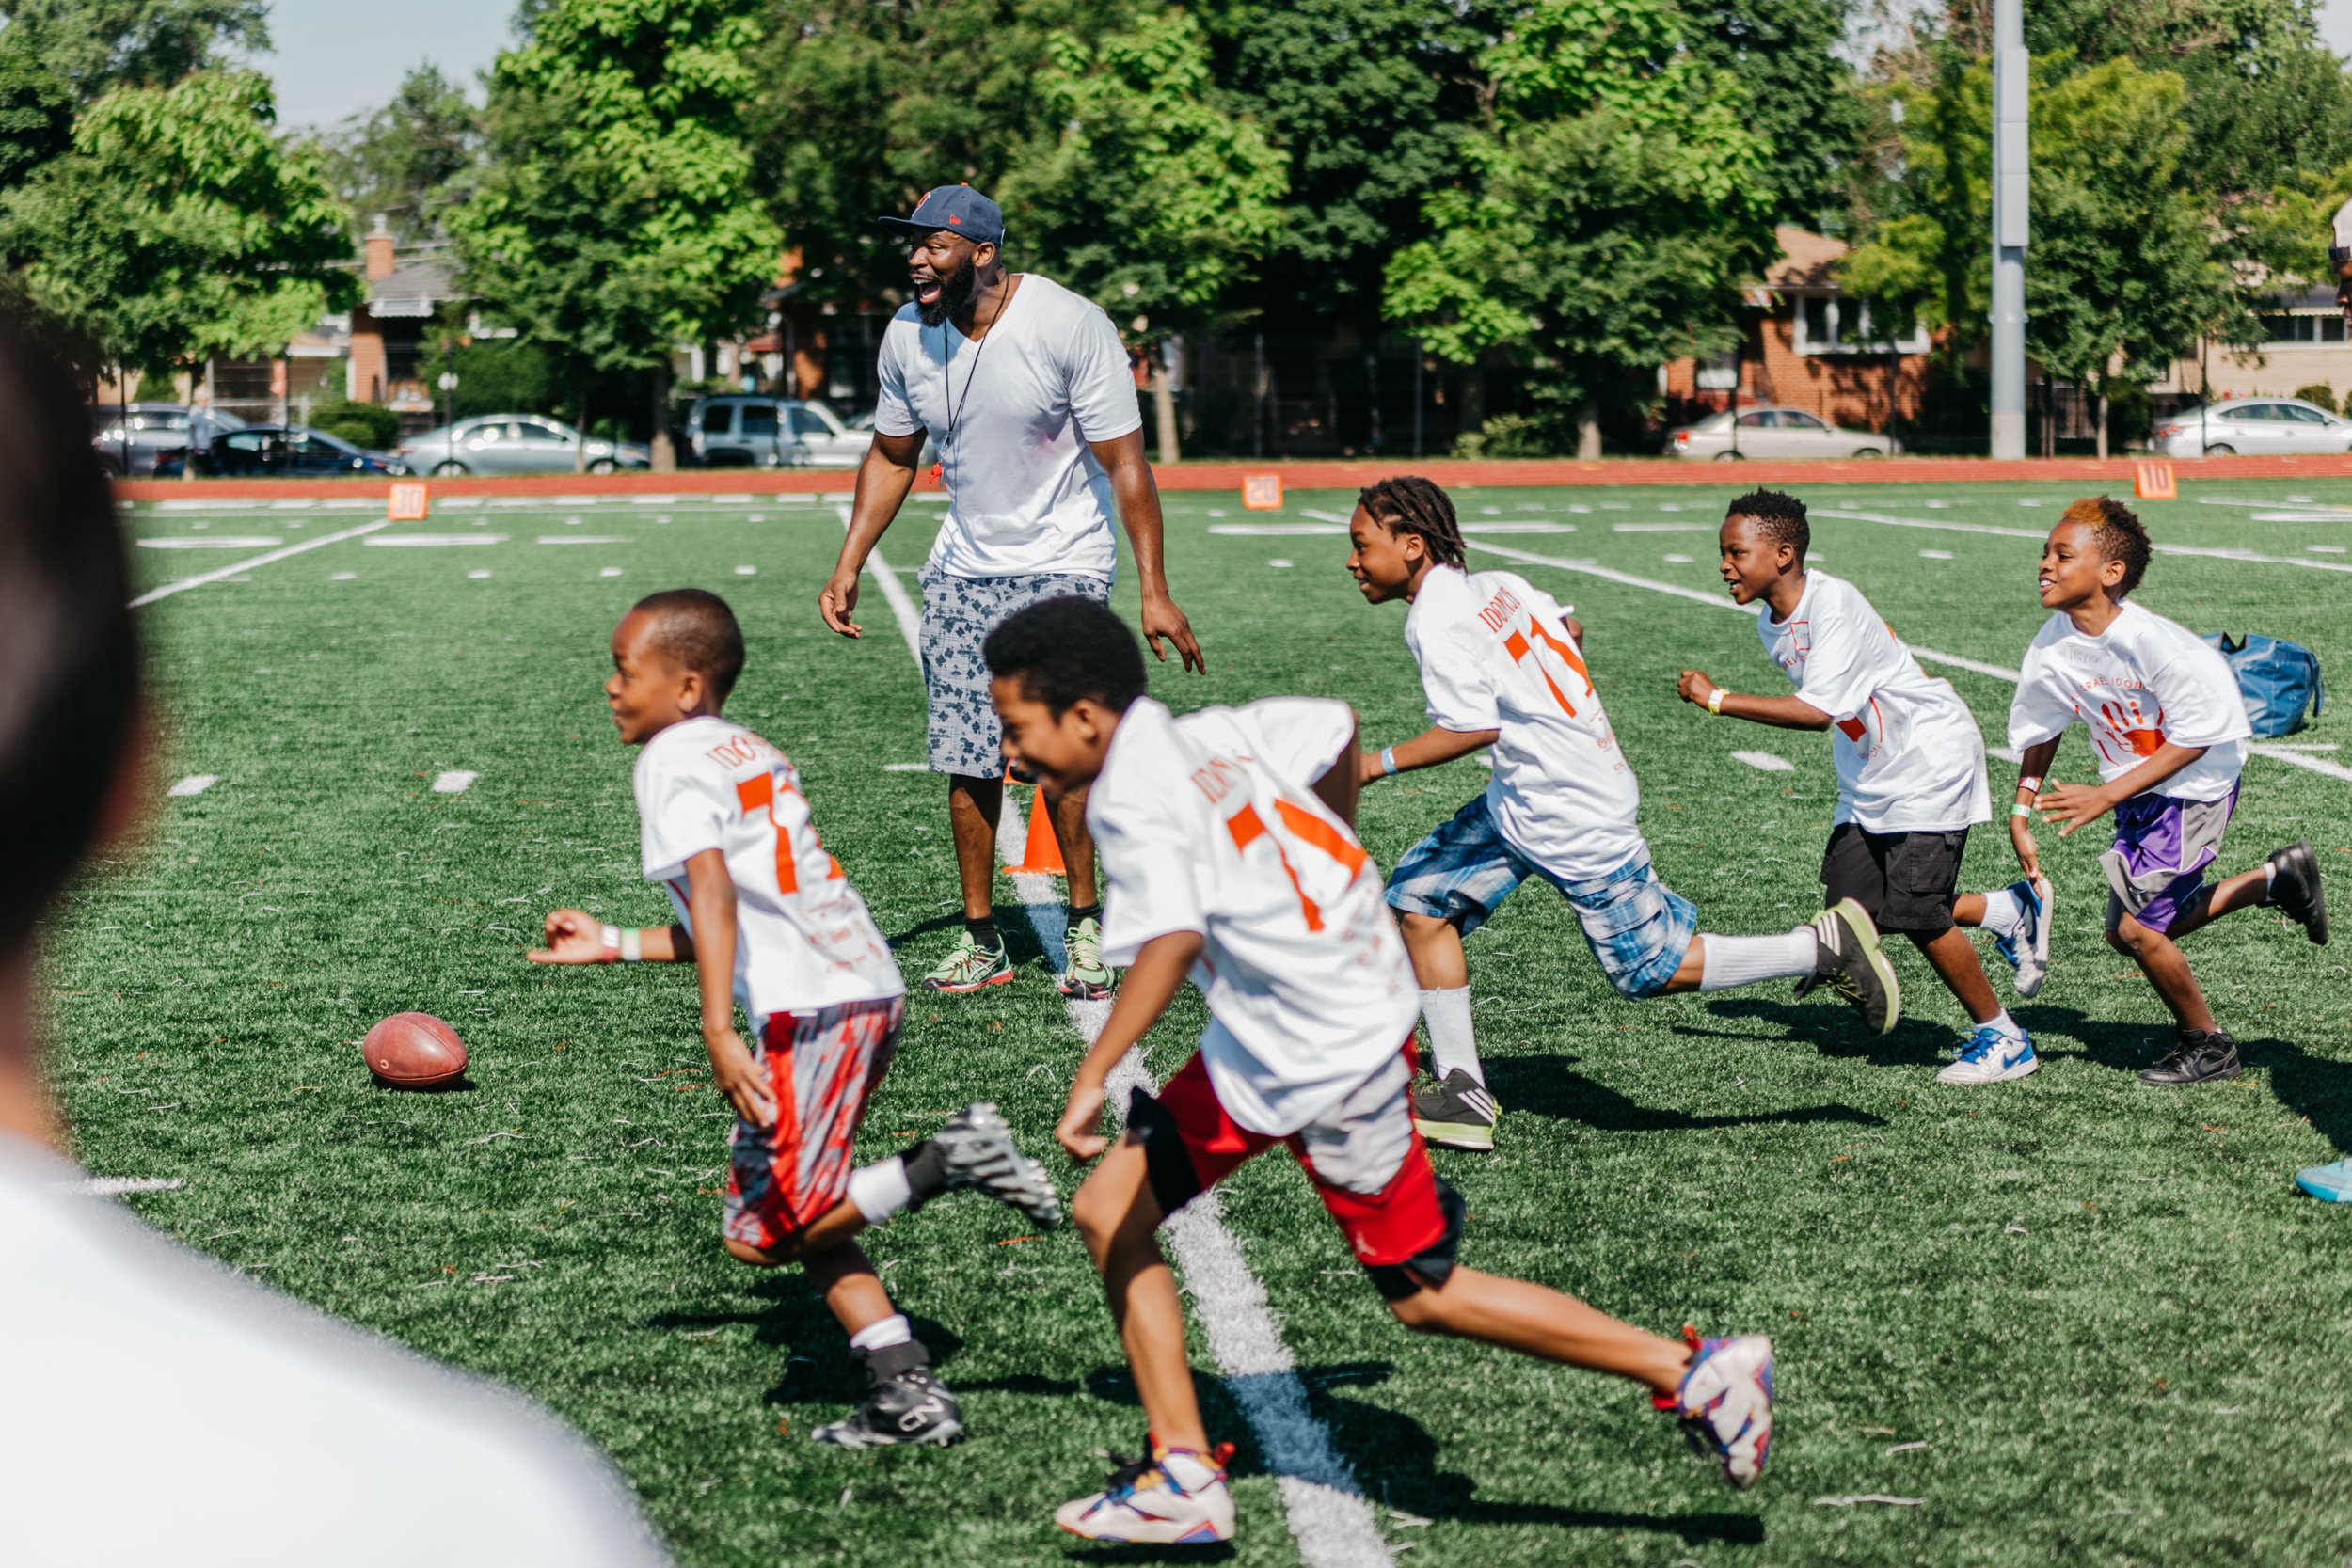 #ILGiveCommunityDay - help us raise funds for the 2017 all-star football and cheer camp.